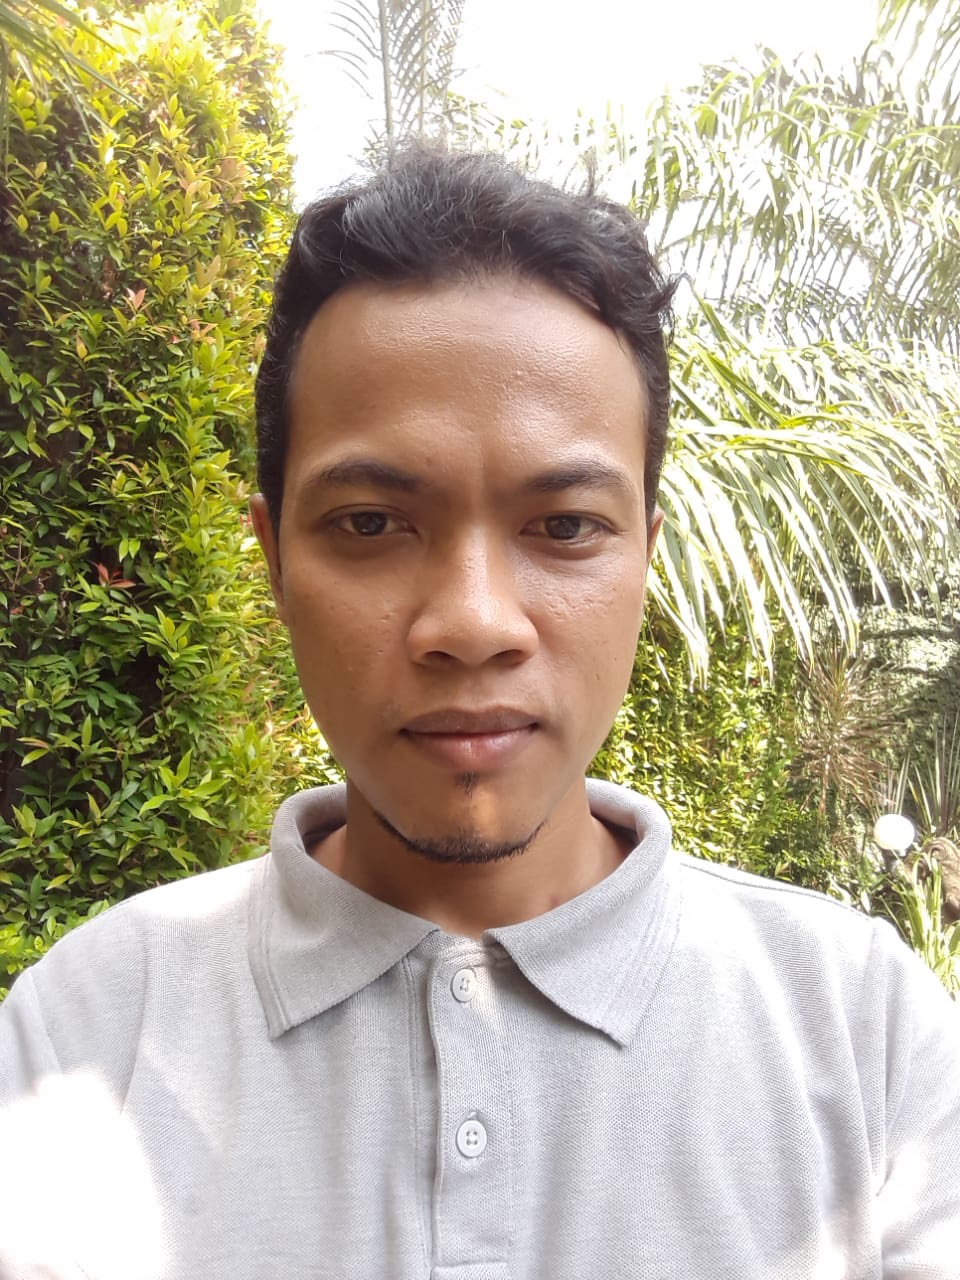 Dimas - Dimas is our engineer and maintenance professional. A kind and gracious man, he always has a beautiful smile on his face. His hobbies include playing soccer, and he is wonderfully talented when it comes to gardening.